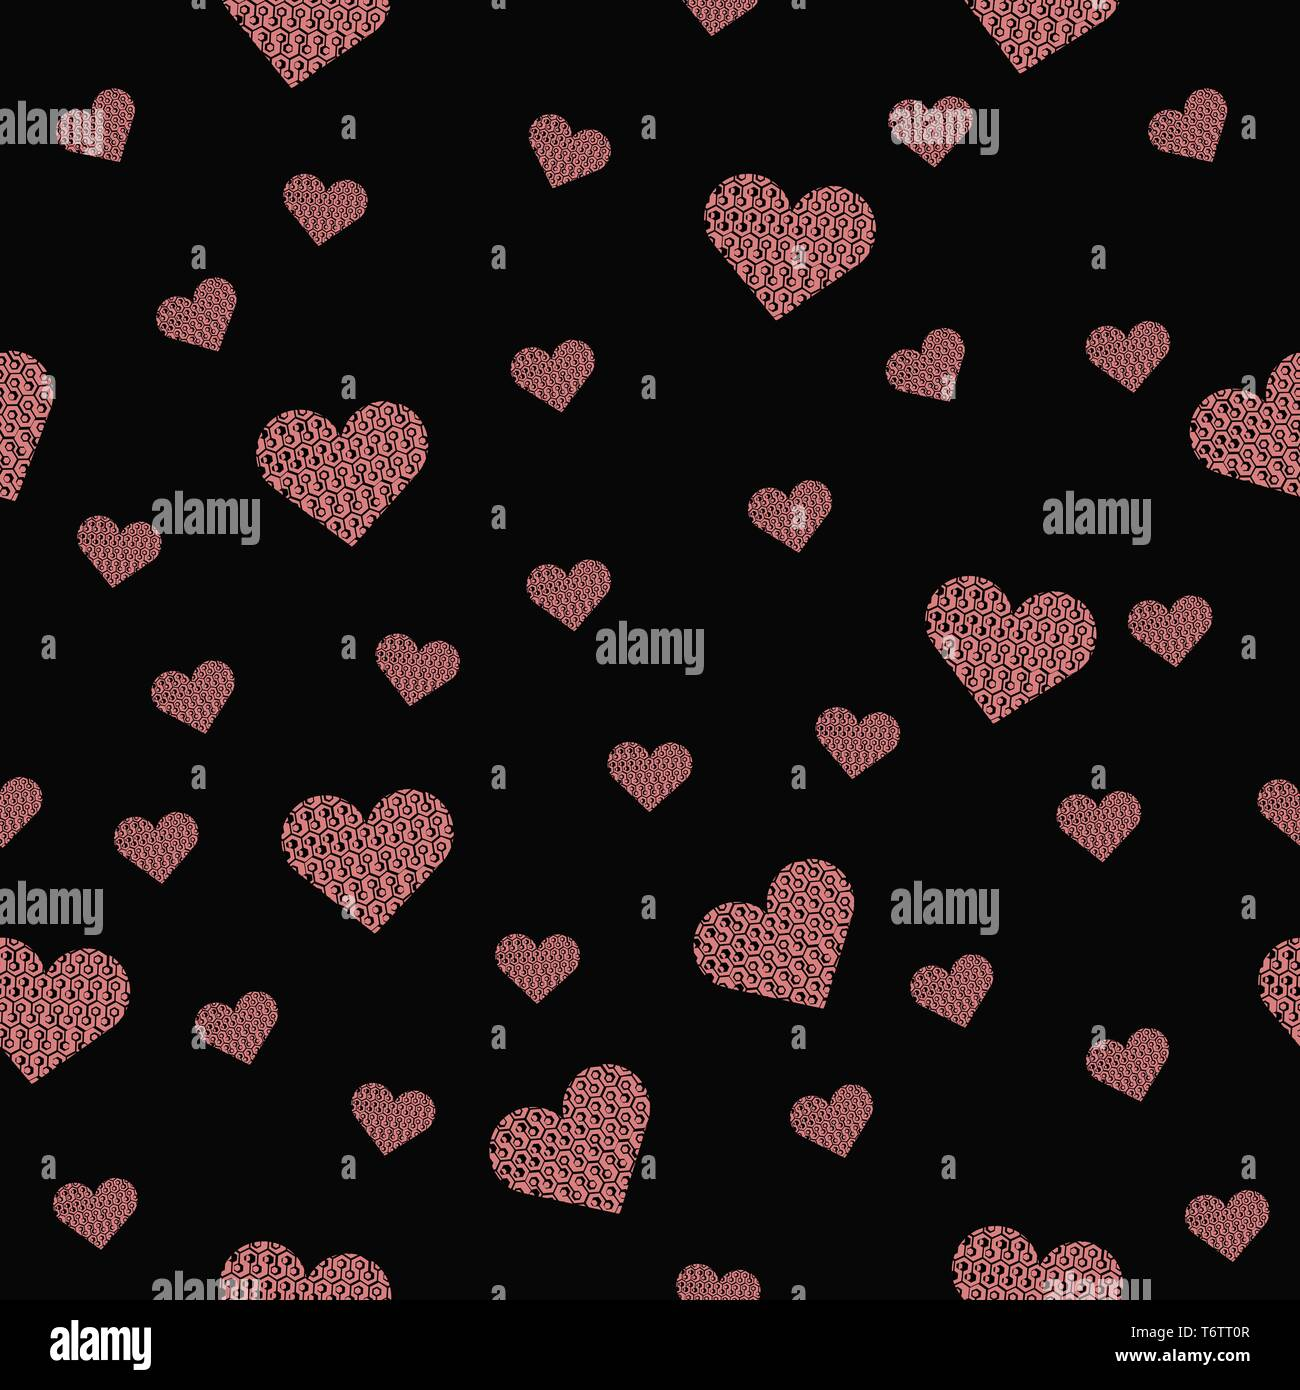 Hearts Wallpaper Red On Black Stock Photos Hearts Wallpaper Red